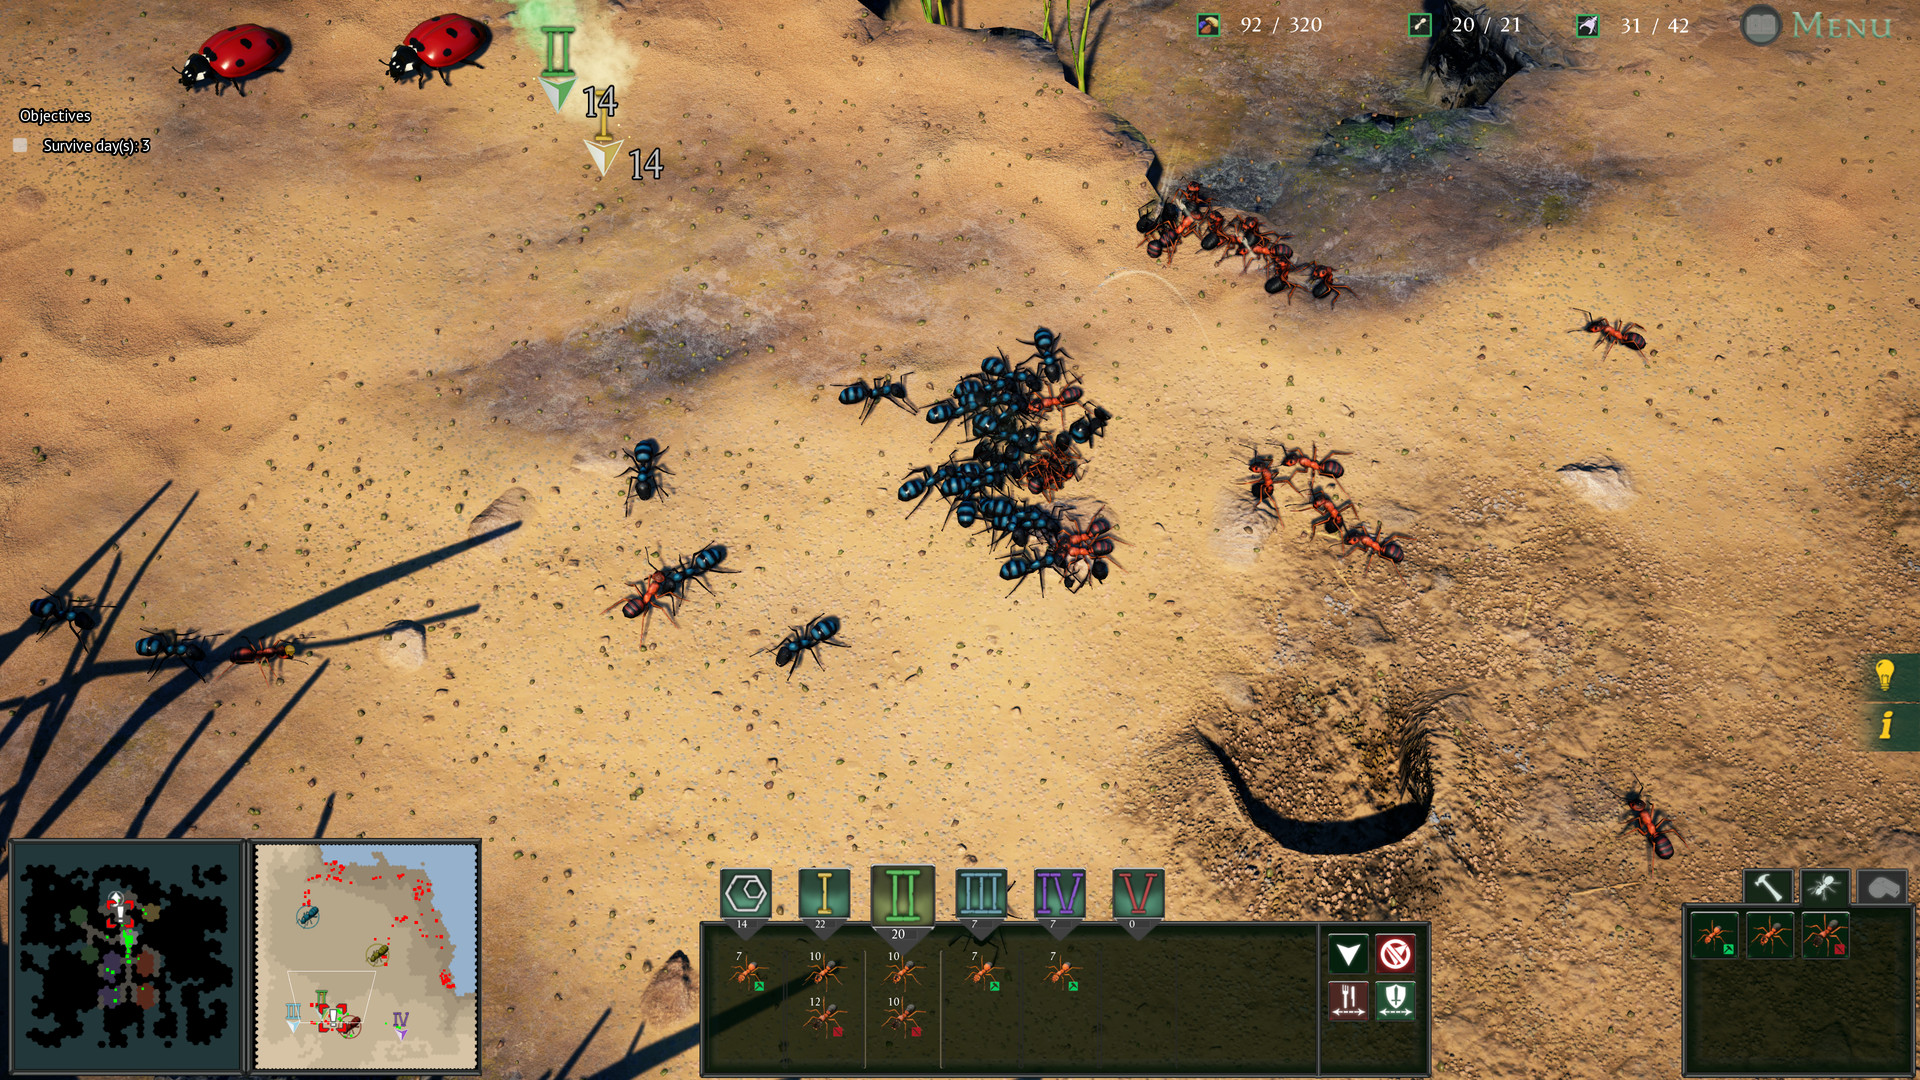 Empires of The Undergrowth Screenshot 3